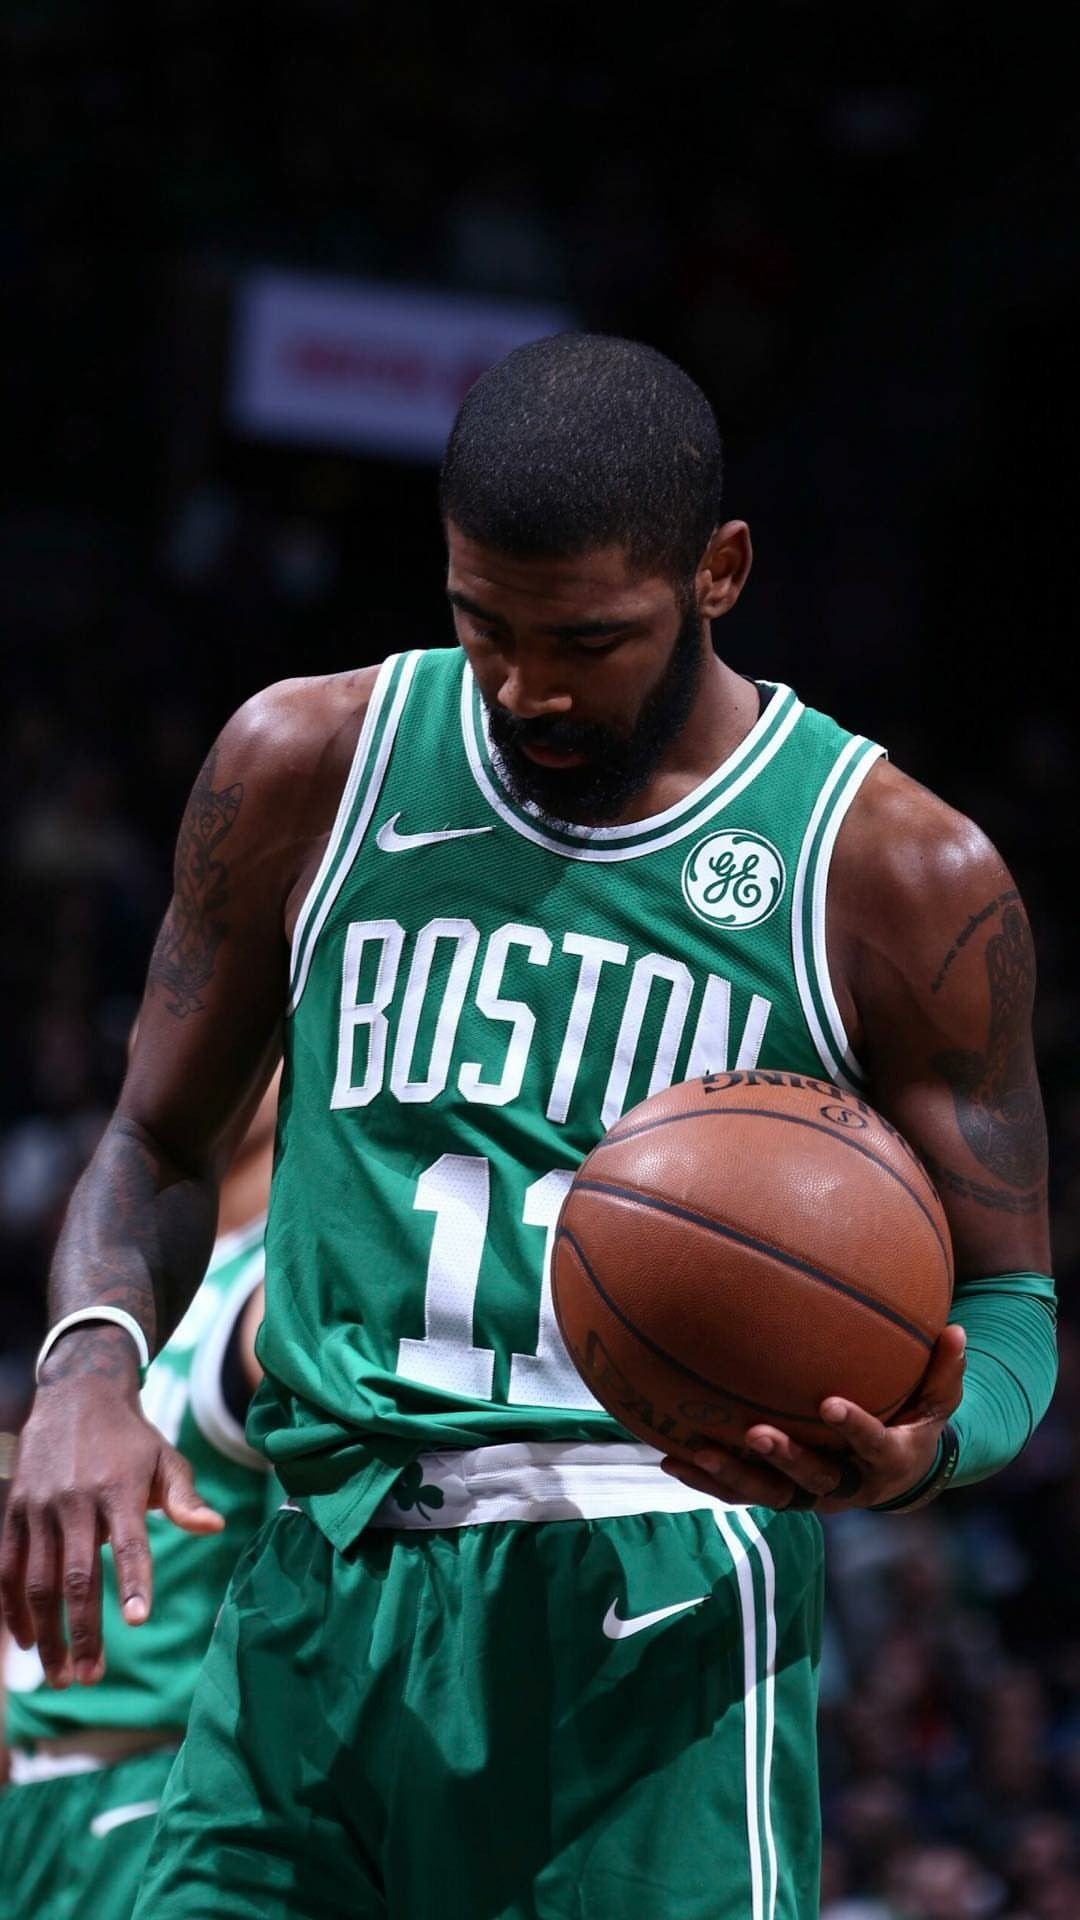 Kyrie Irving Wallpaper Kyrie Irving Celtics Basketball Drills Basketball Workouts